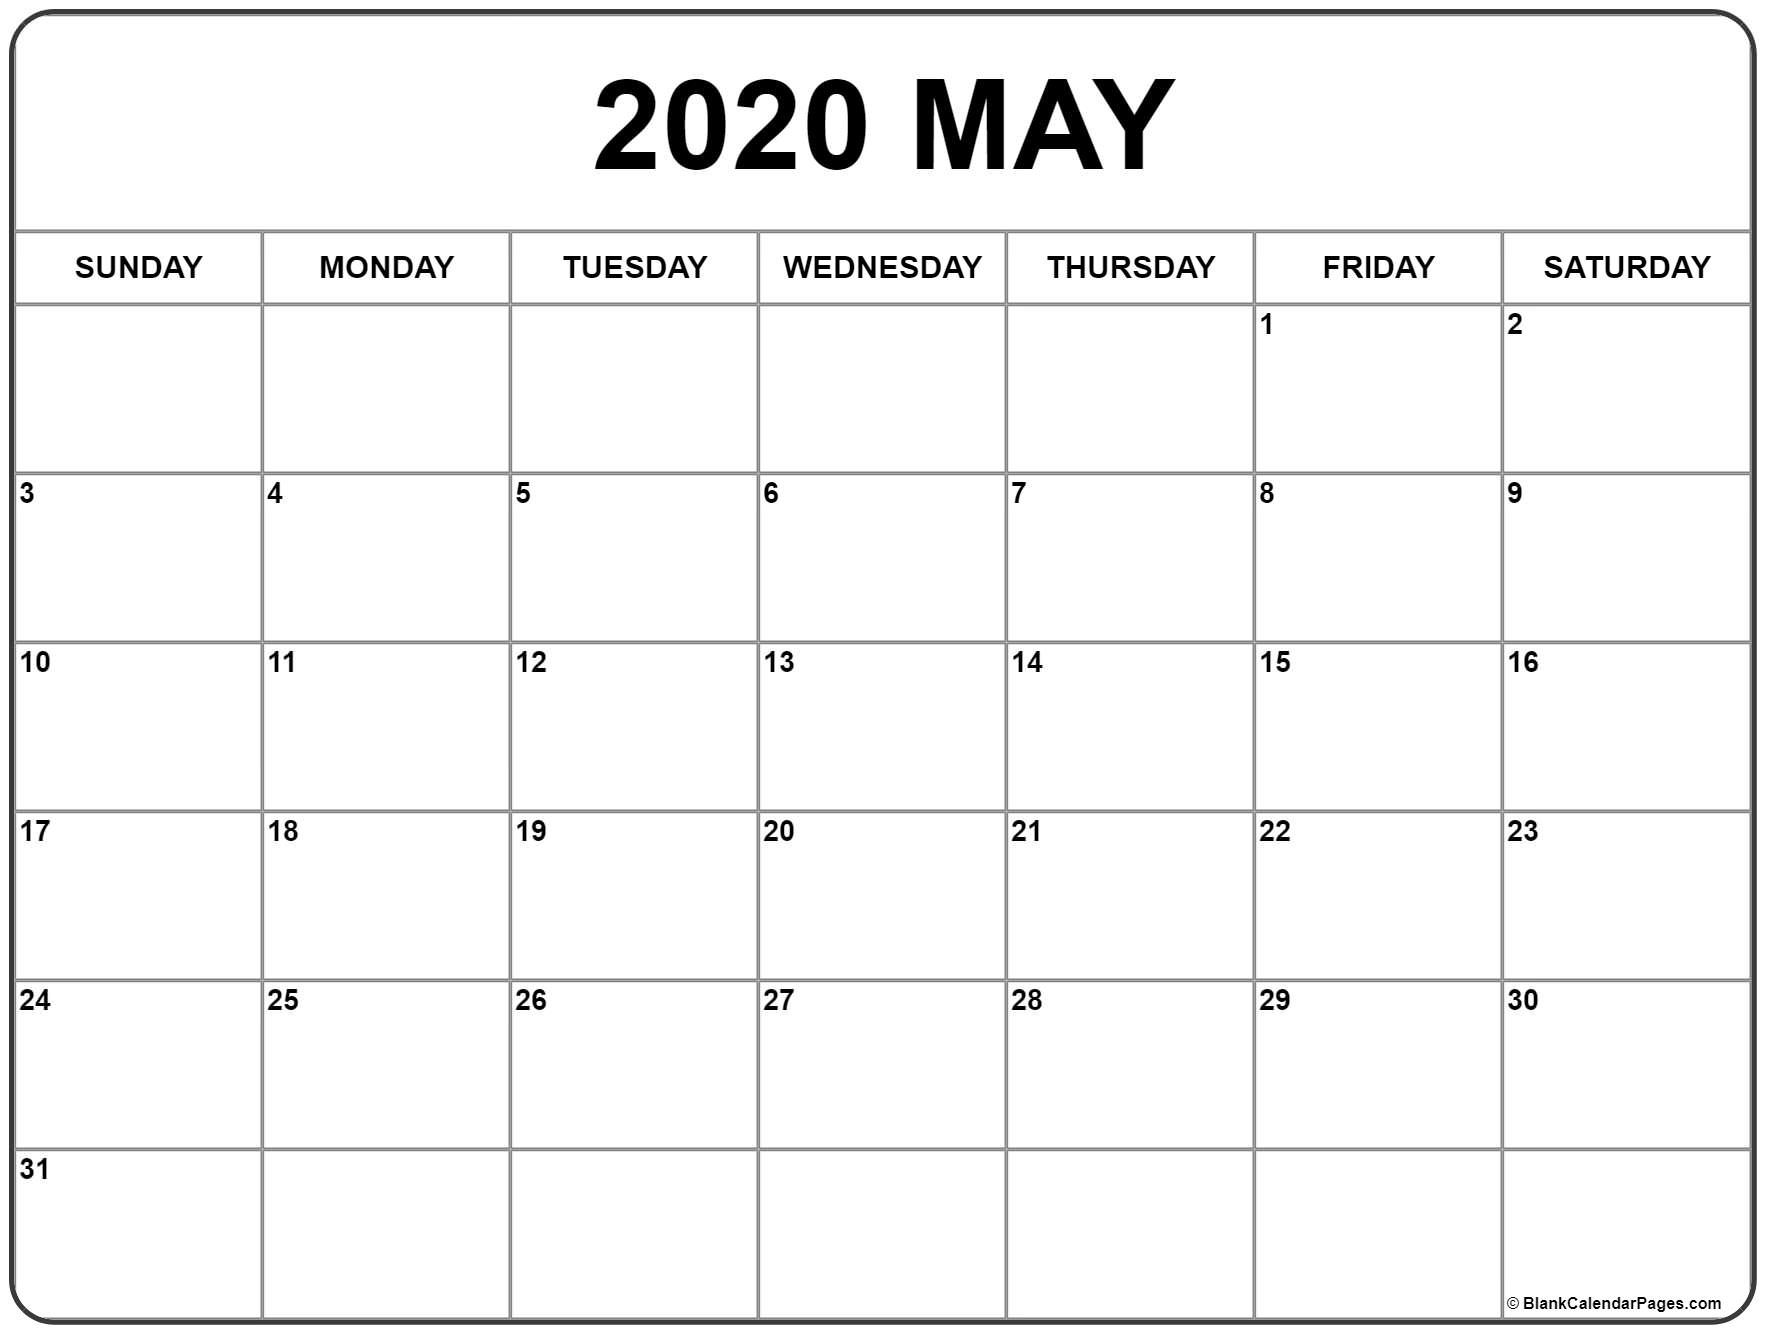 May 2020 Calendar | Free Printable Monthly Calendars within Free Fill In Calendars 2020